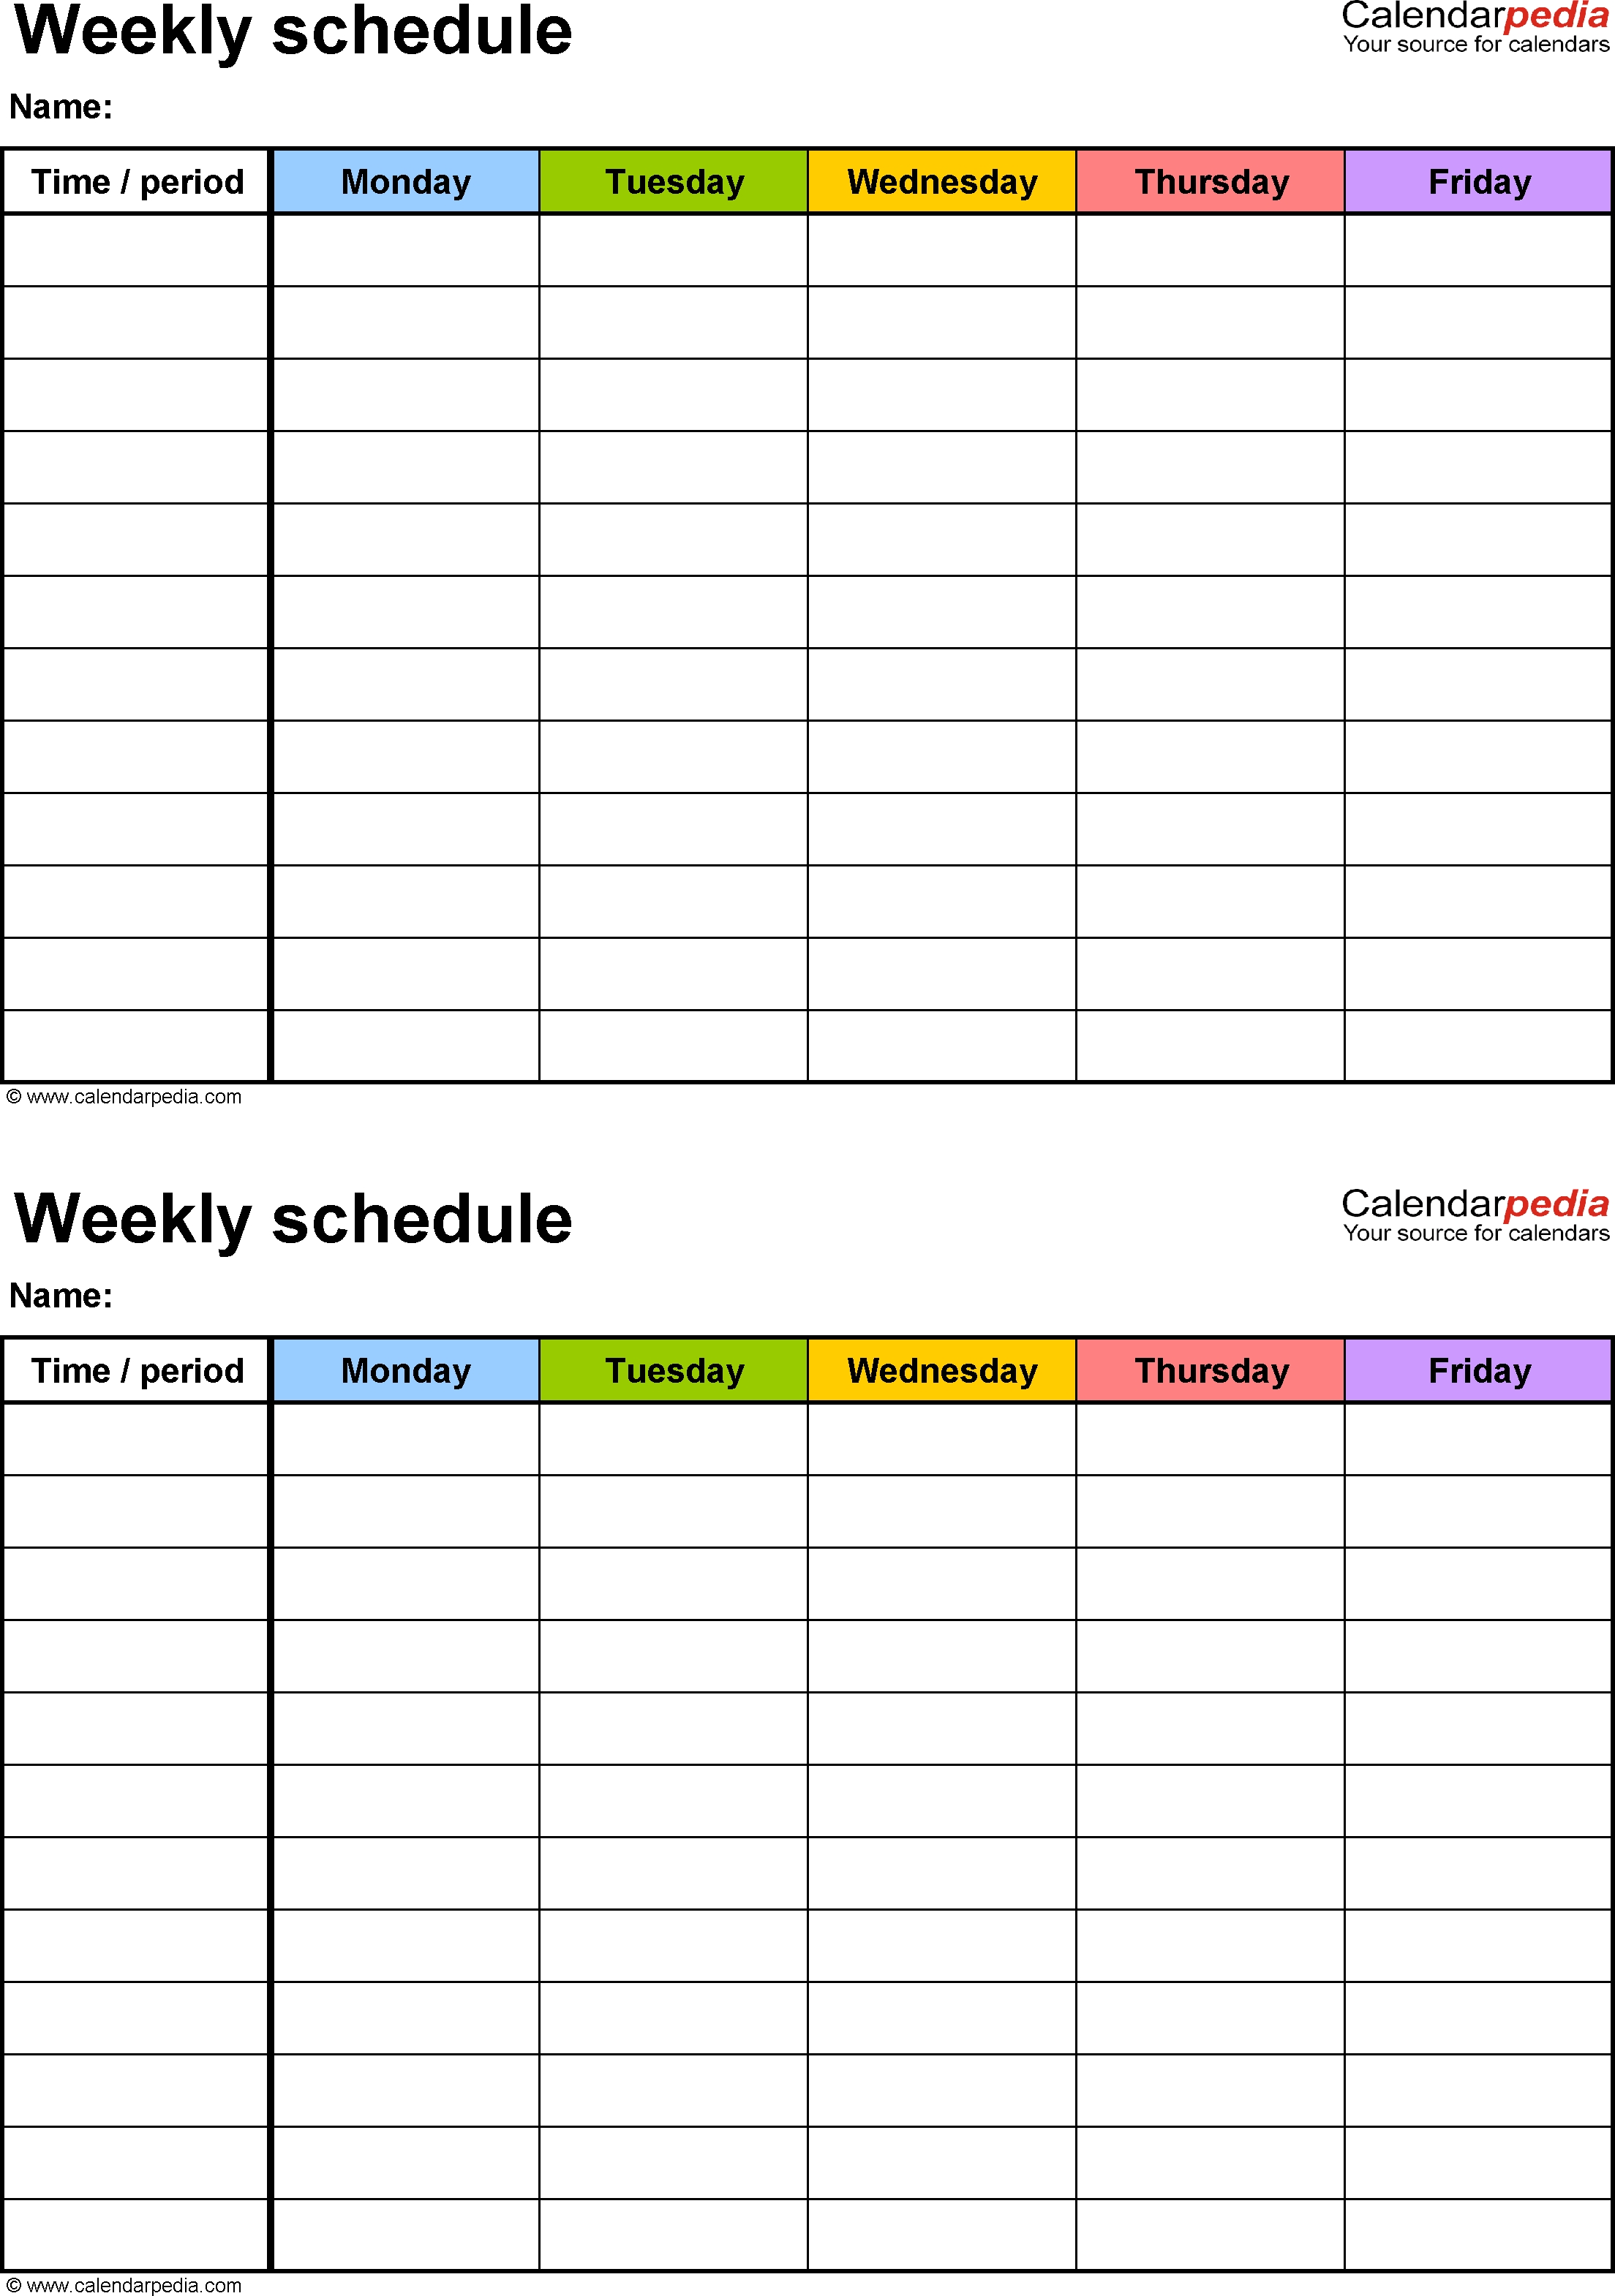 Weekly Schedule Template For Excel Version 3: 2 Schedules On One with Template For Monday Through Friday School Schedule